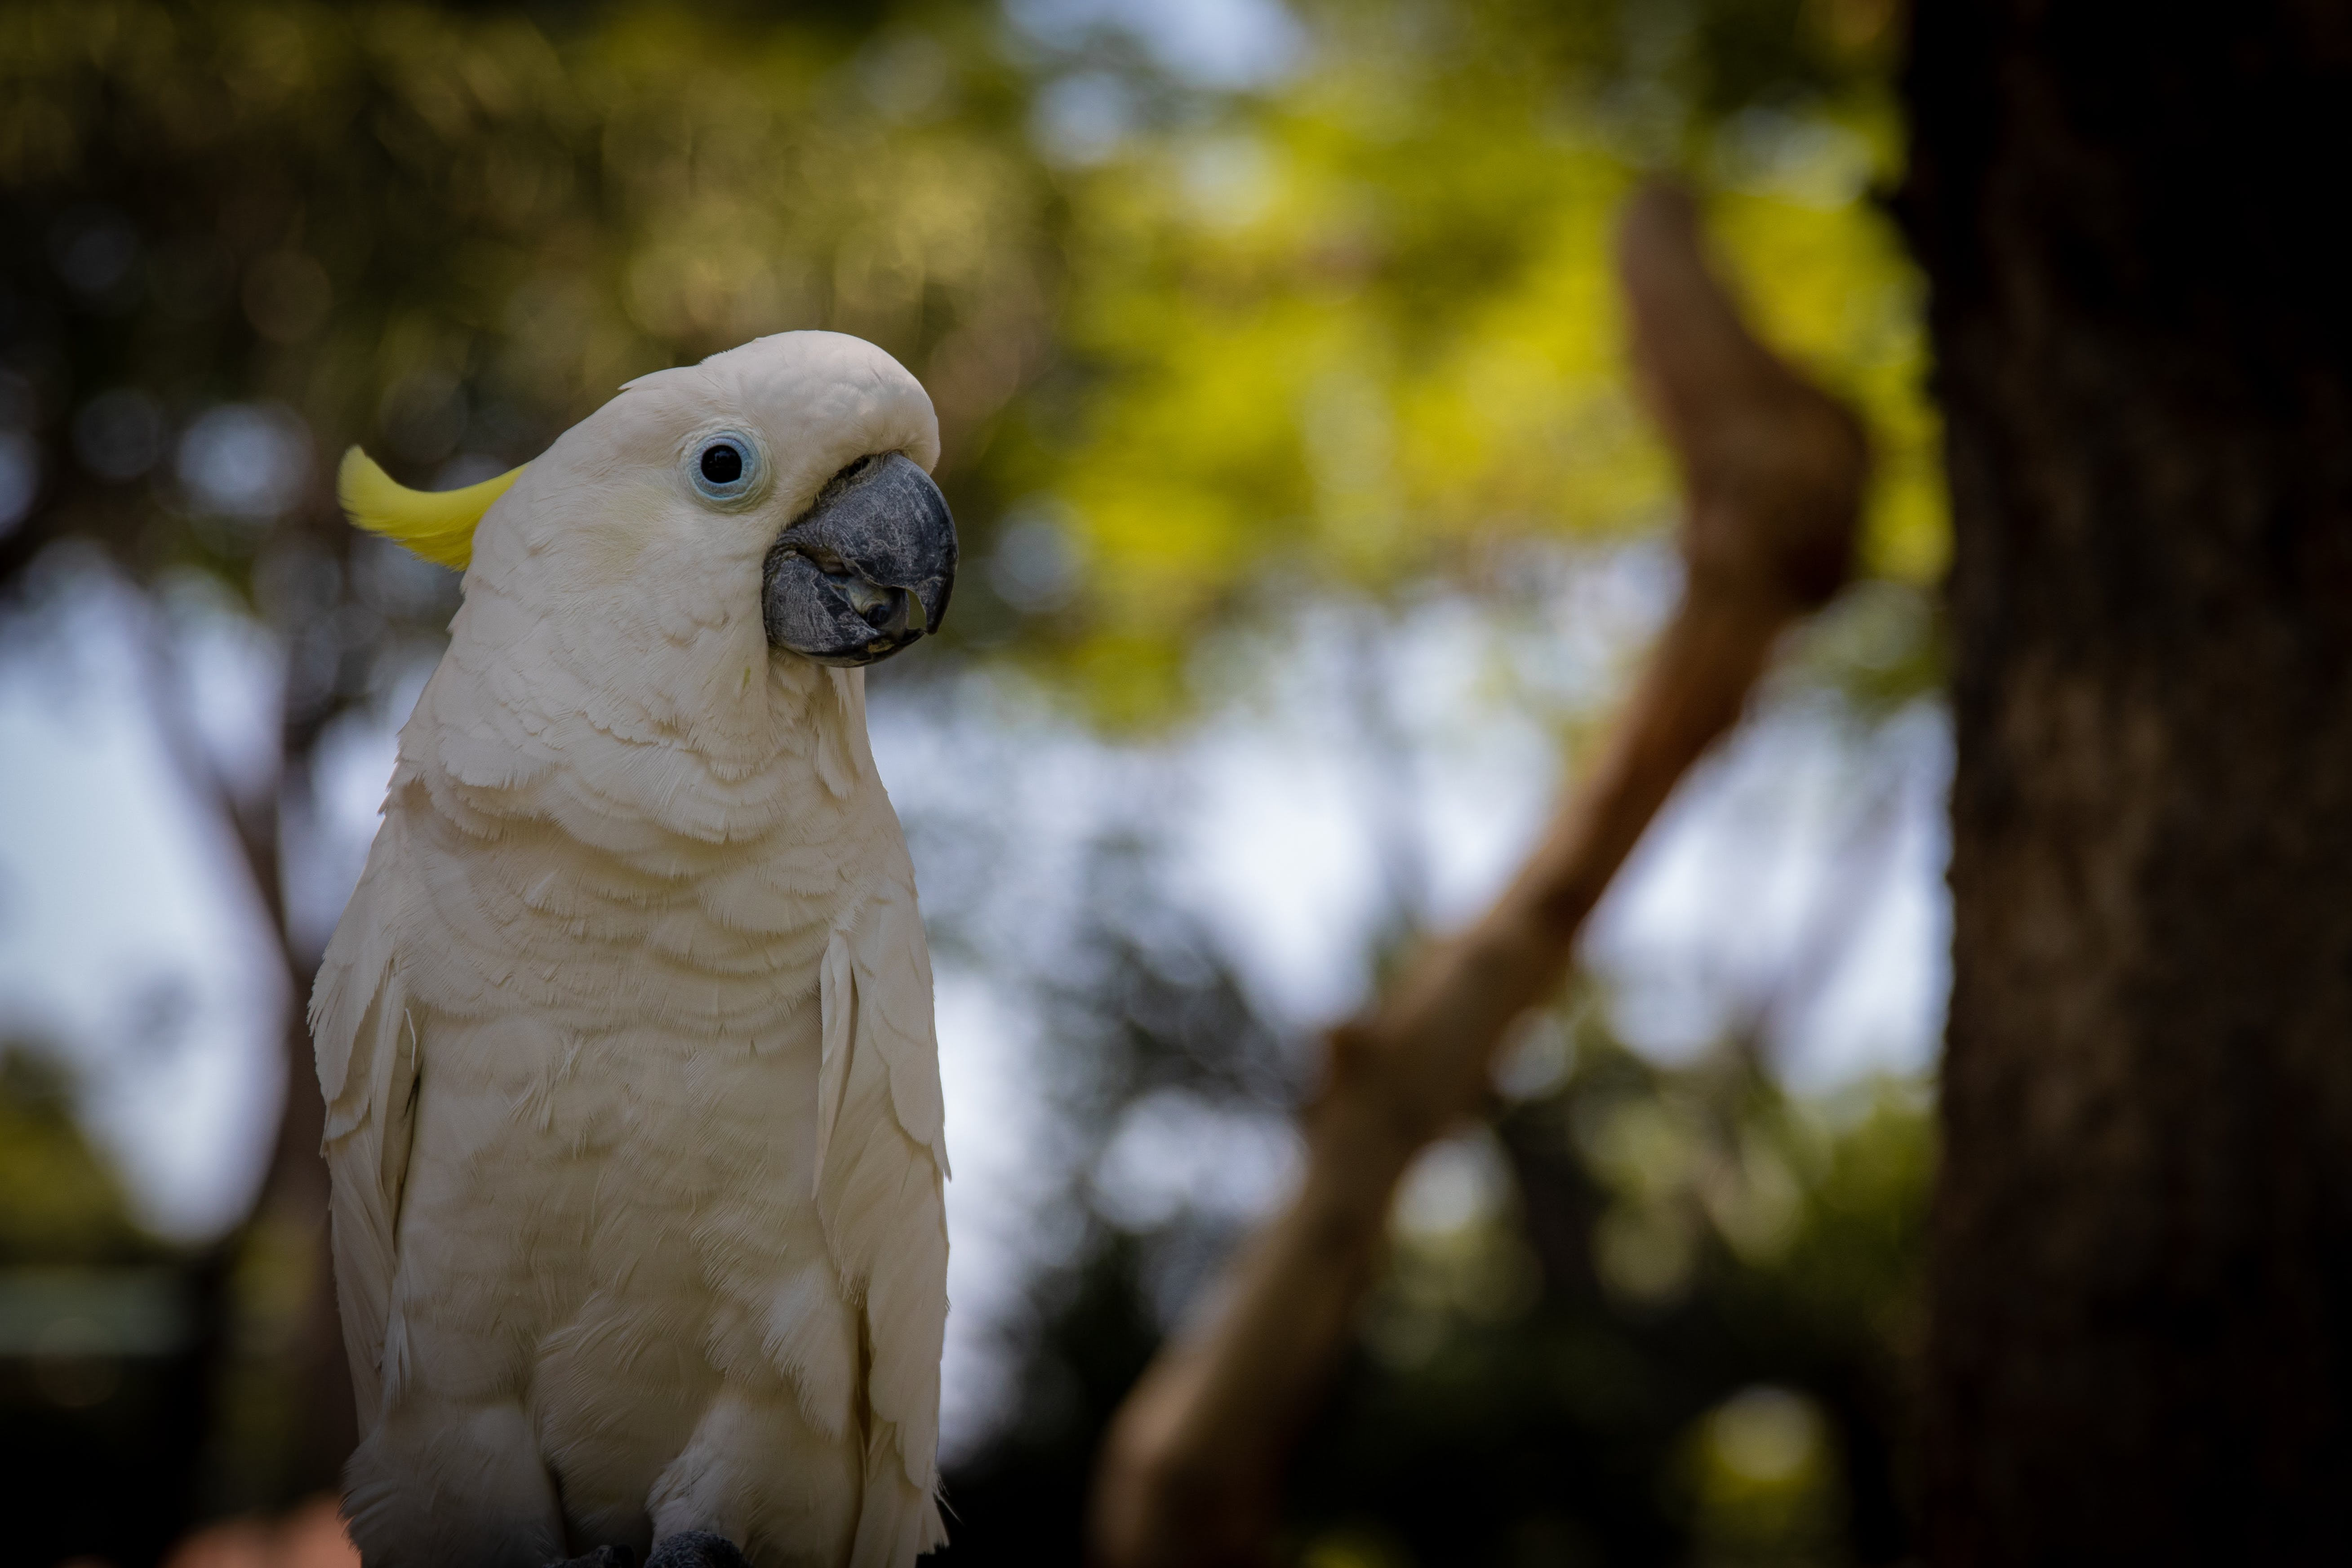 Photography of a White Parrot